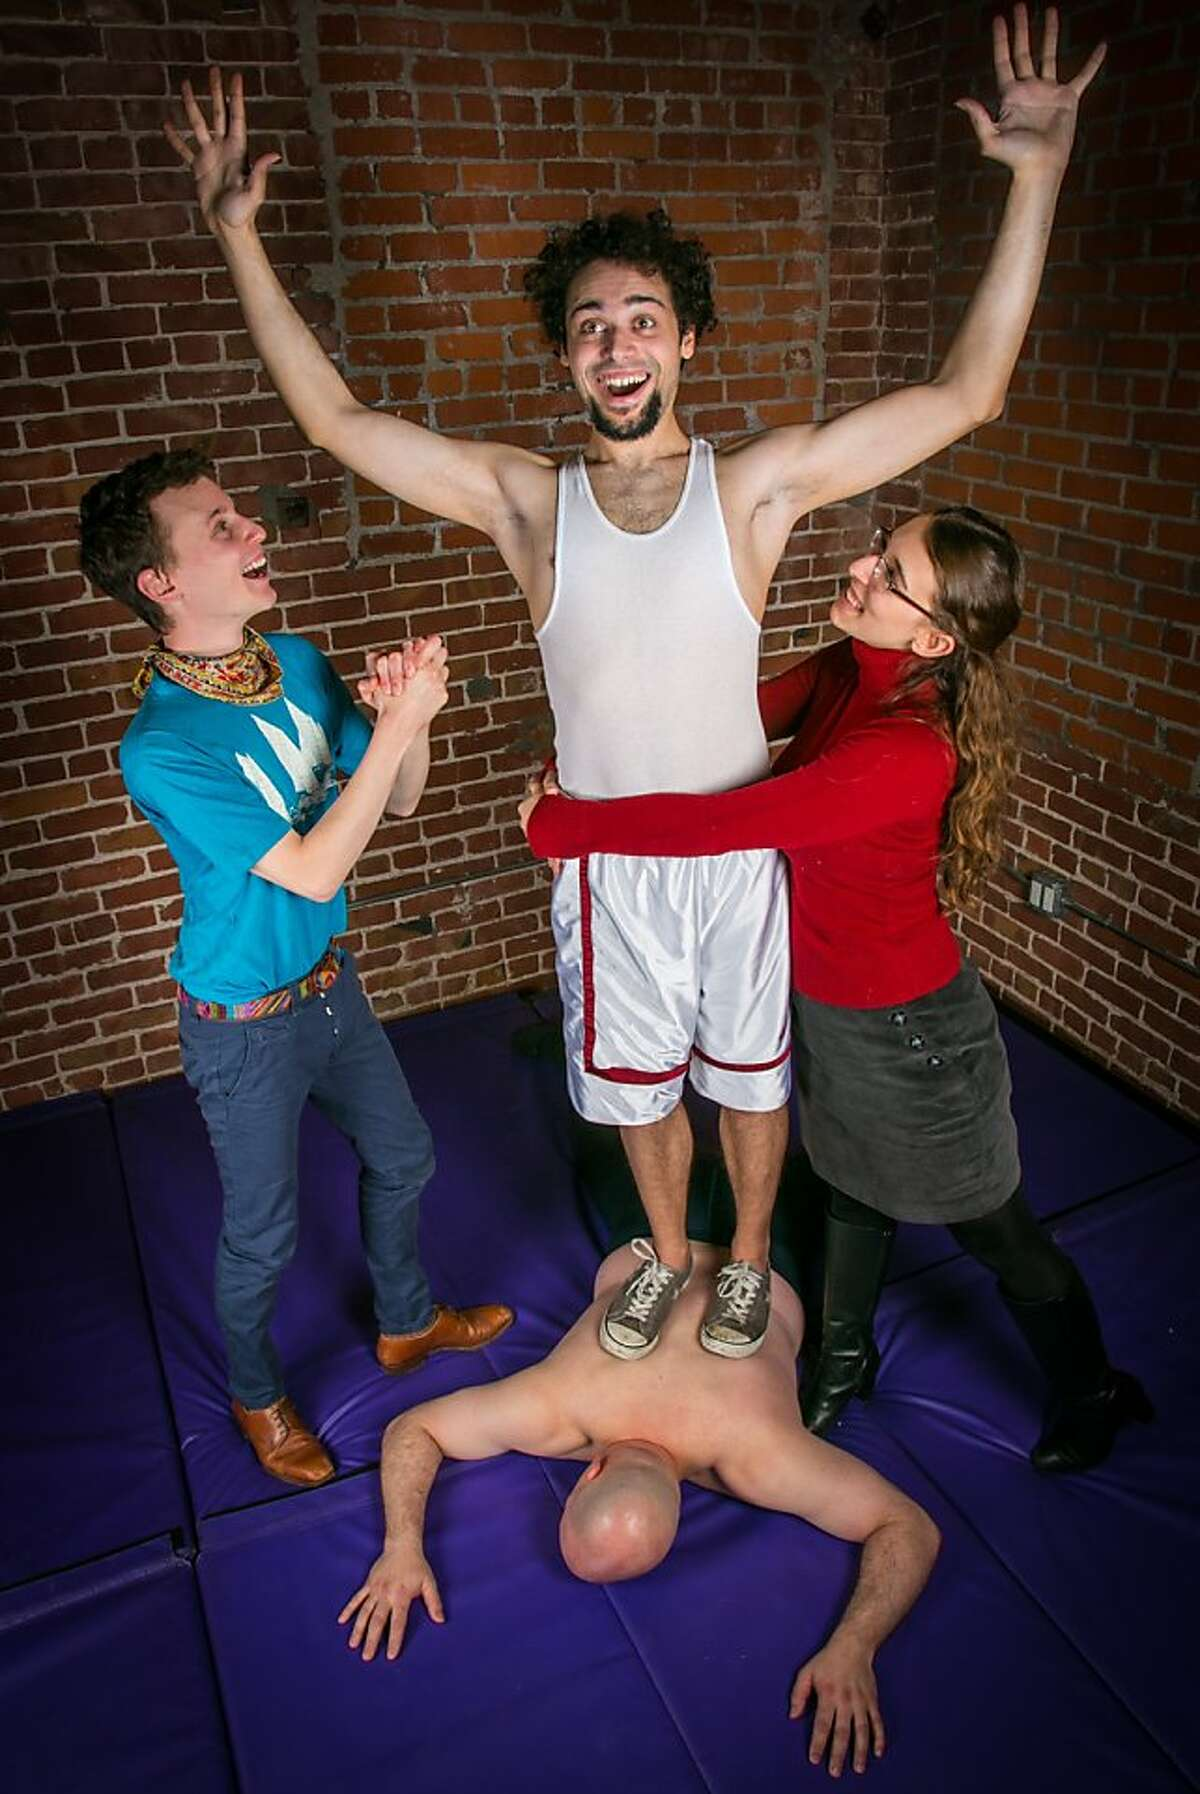 """Orlando (Miyaka Cochrane, center) bests the famous wrestler Charles (Stacz Sadowski) as Rosalind (Maria Giere Marquis) and Celia (Alexander Lenarsky) celebrate his short-lived victory in Impact Theatre's even-more-gender-bending-than-usual """"As You Like It,"""" running through March 30 at LaVal's Subterranean in Berkeley."""